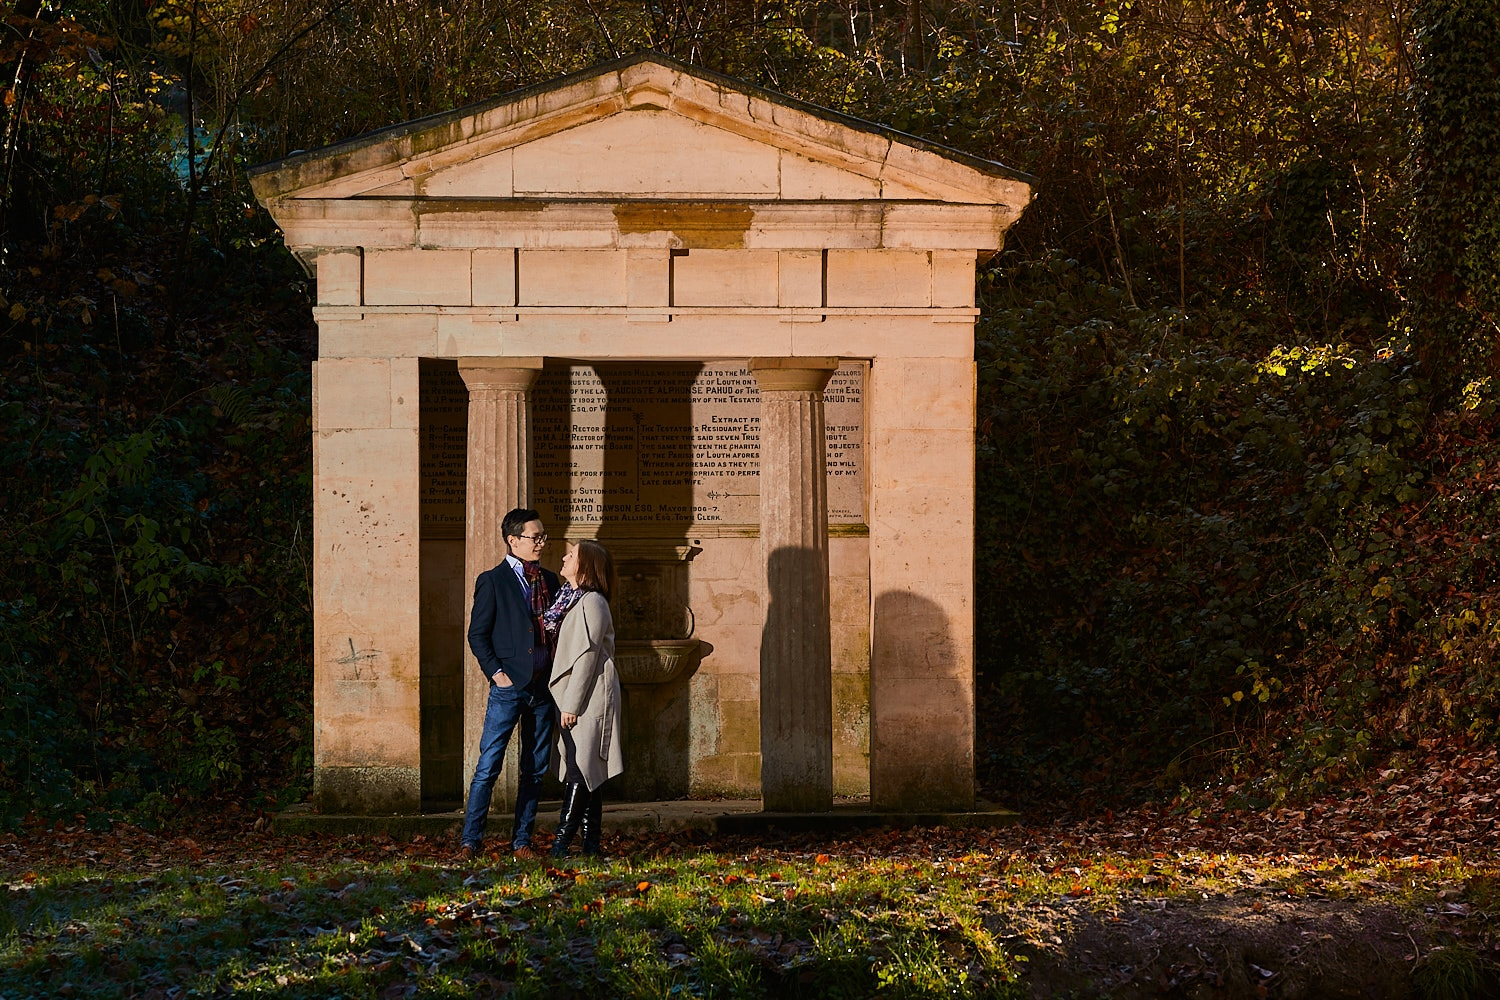 A couple pose by the statue at at Hubbards Hills, Louth, Lincolnshire